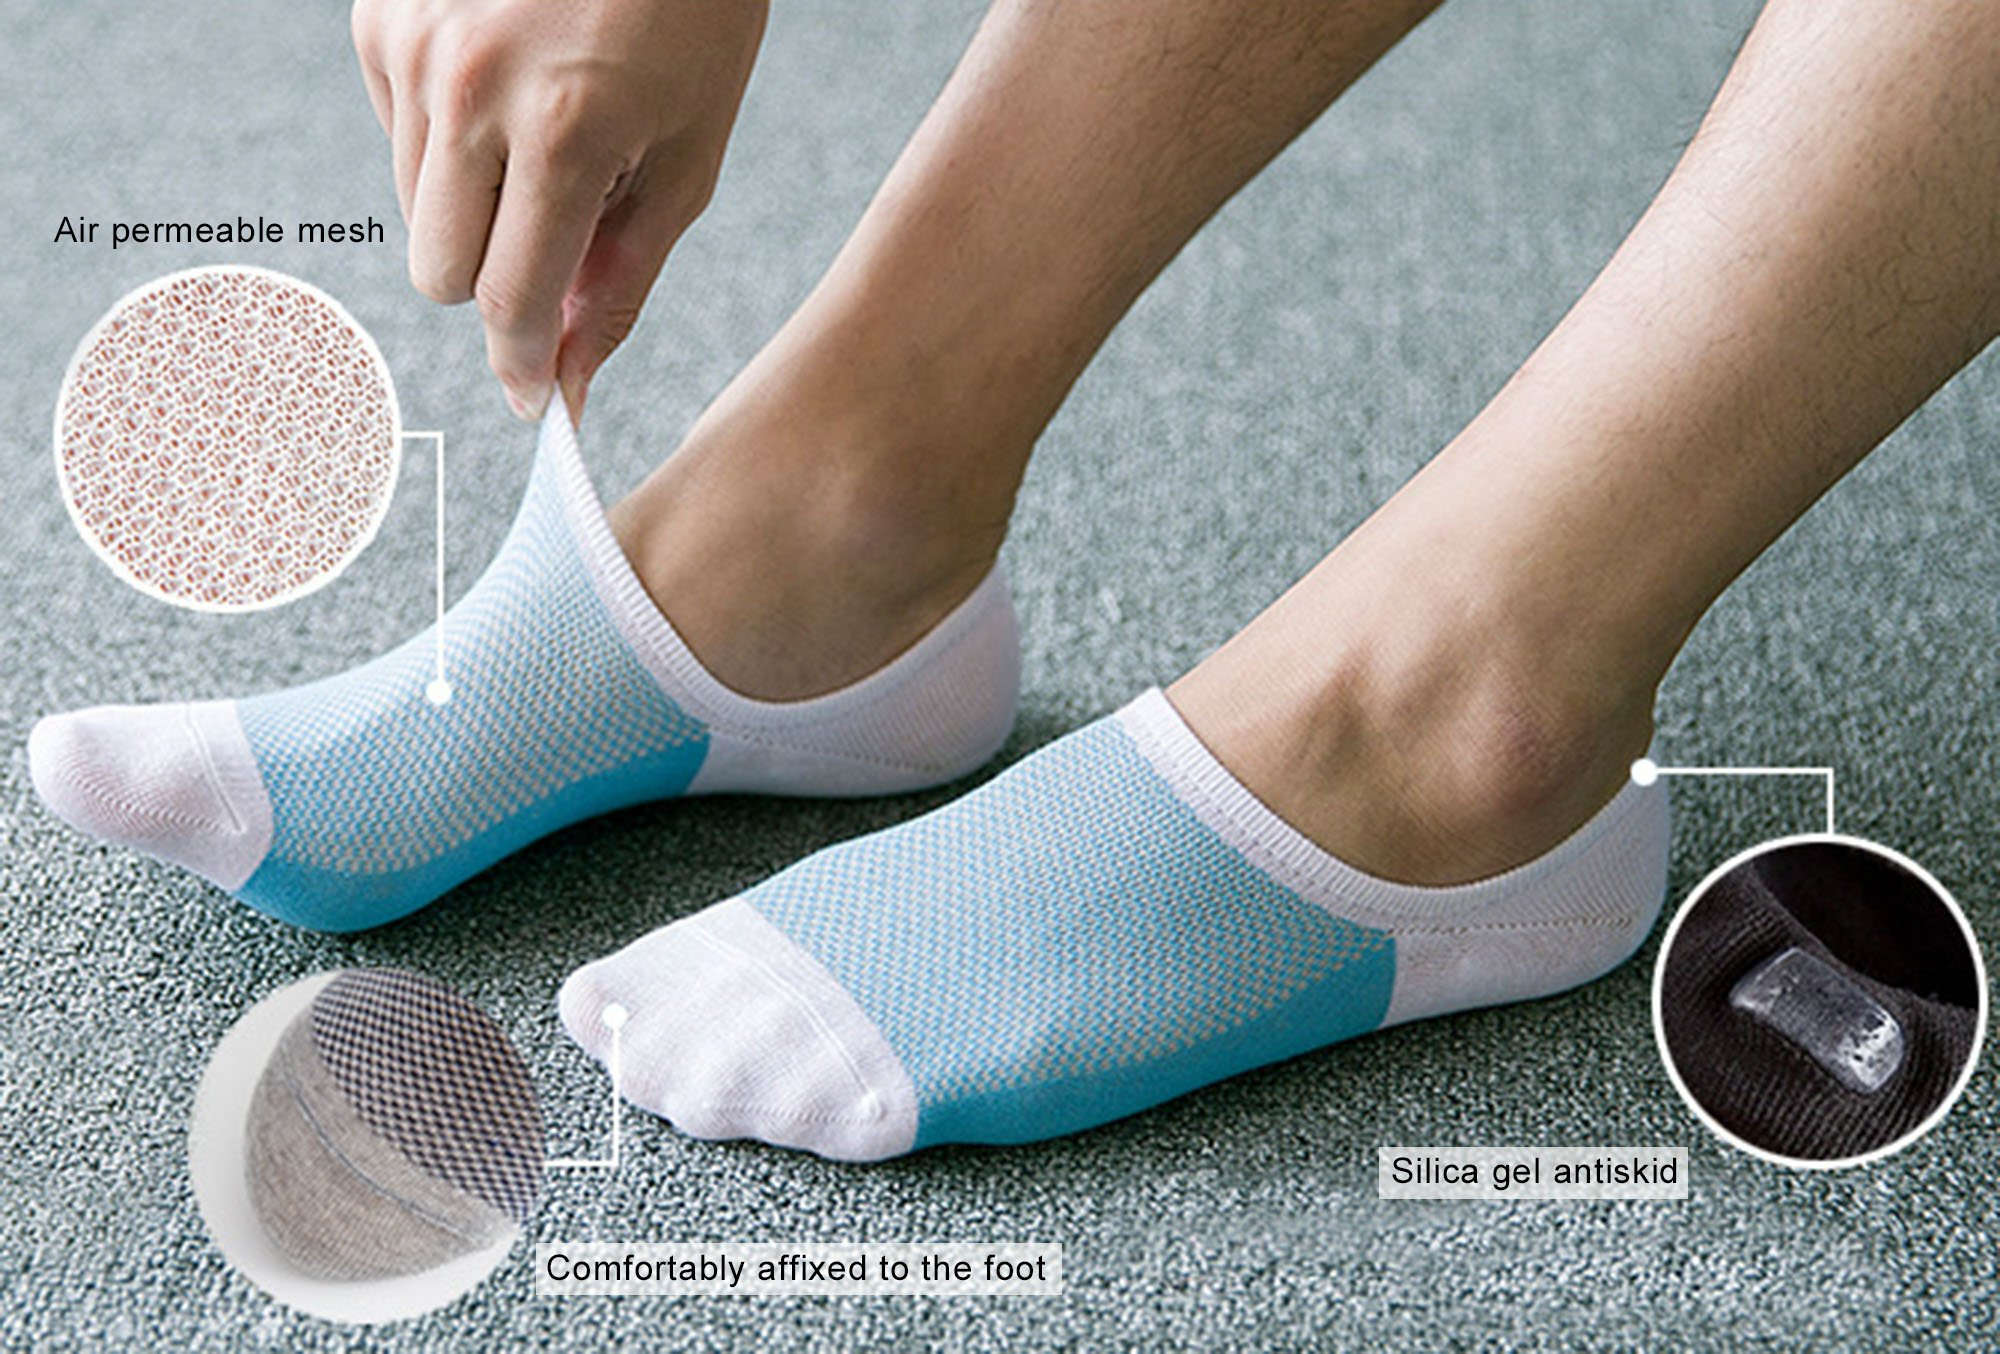 Spikerking Mens Cotton Low Cut No Show Casual Non-Slide Breathe Thin Socks 5 Pack,5 Pack-5 Color